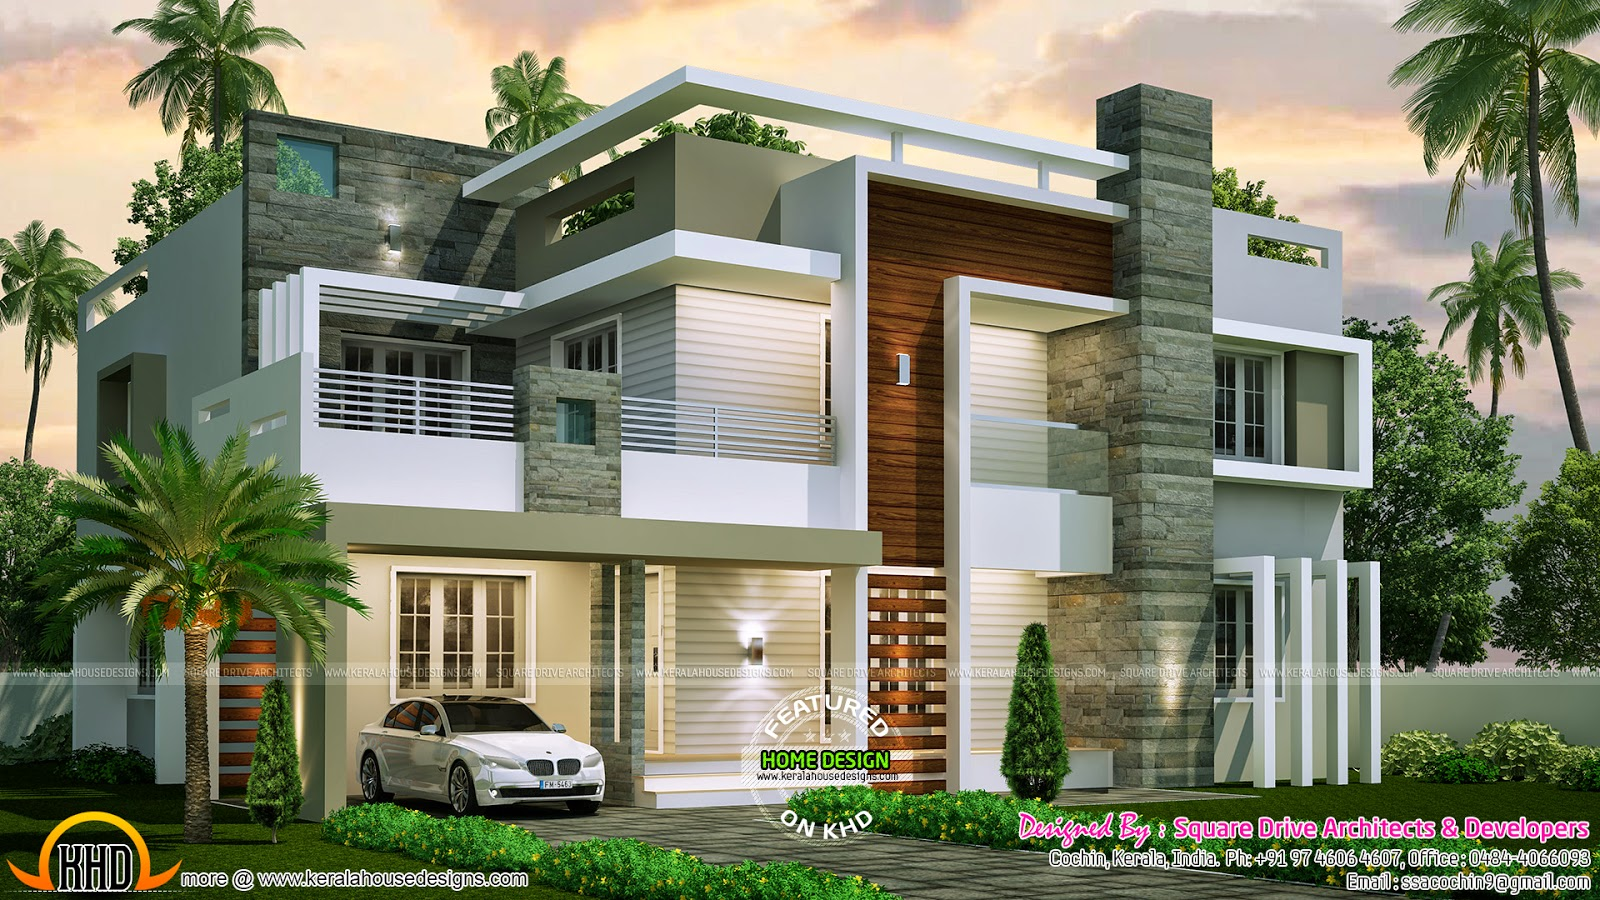 4 bedroom contemporary home design kerala home design for Post modern home design